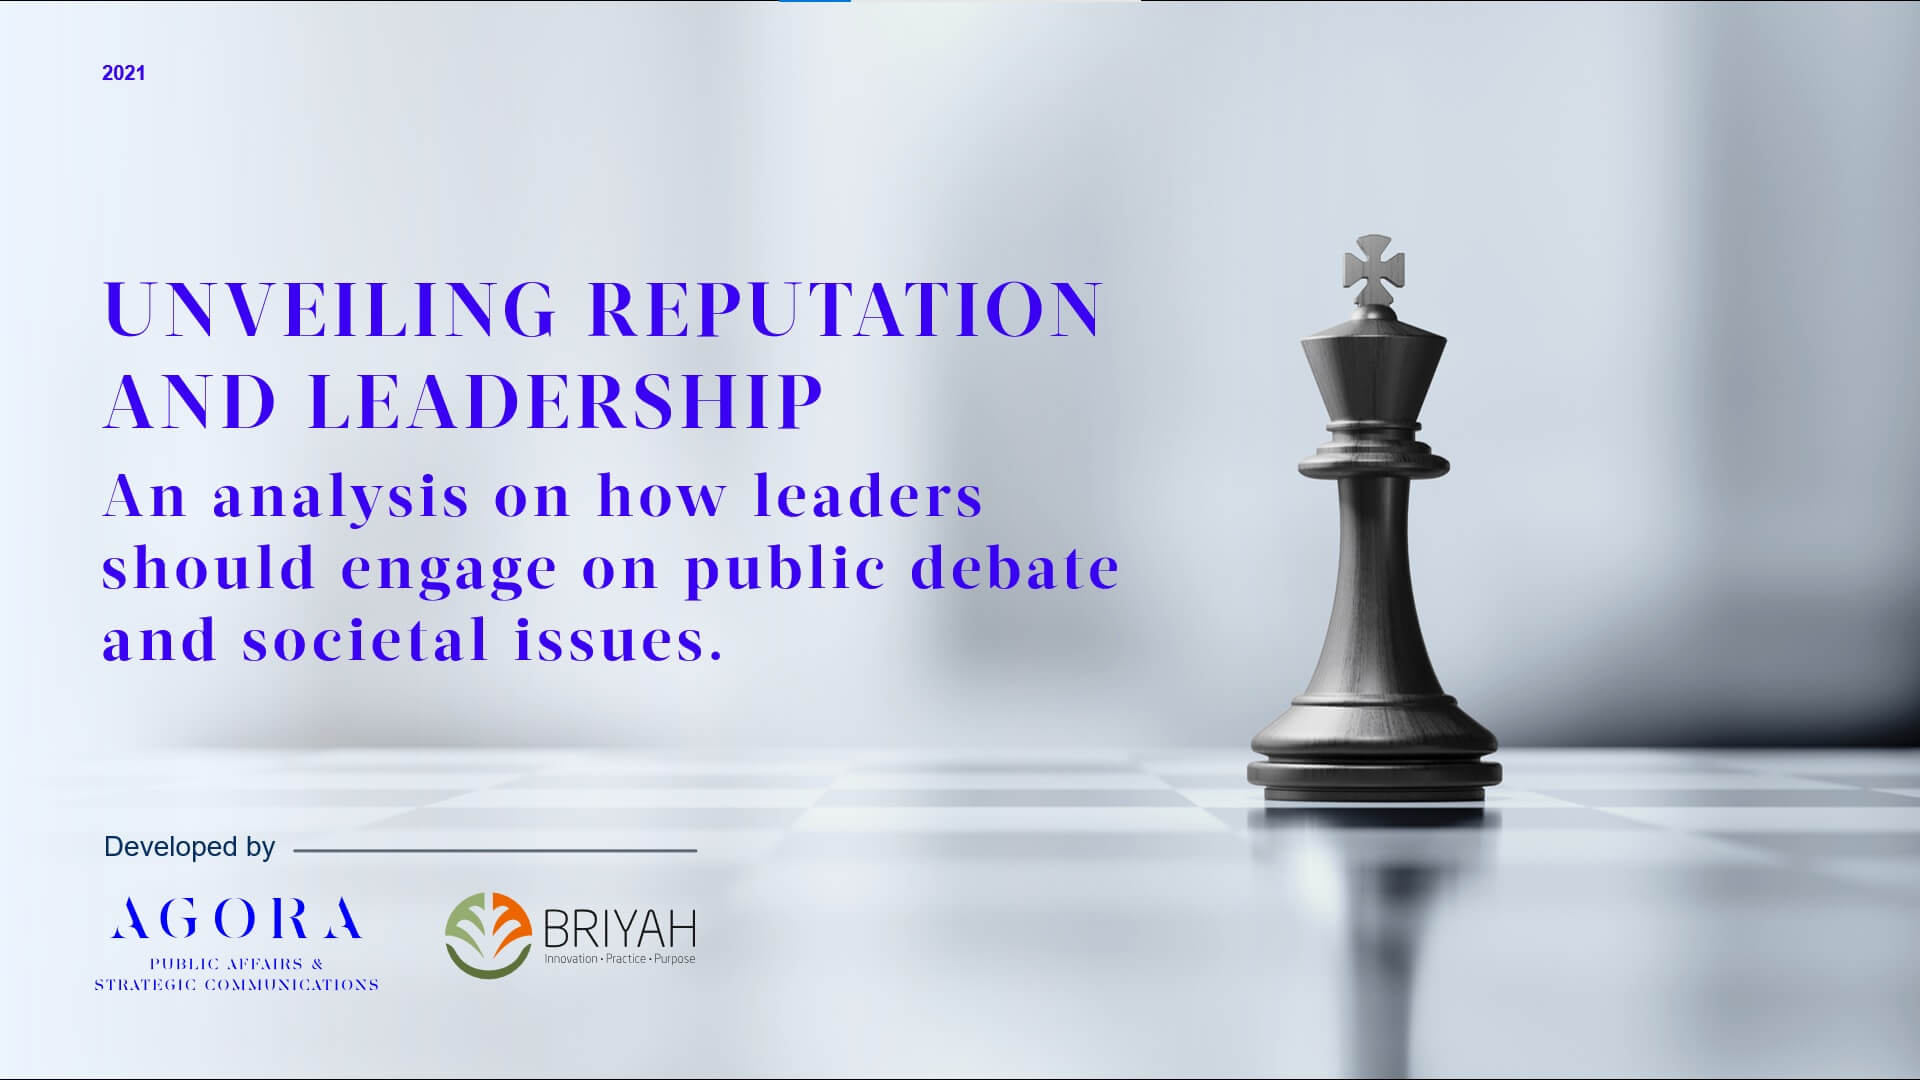 UNVEILING REPUTATION AND LEADERSHIP